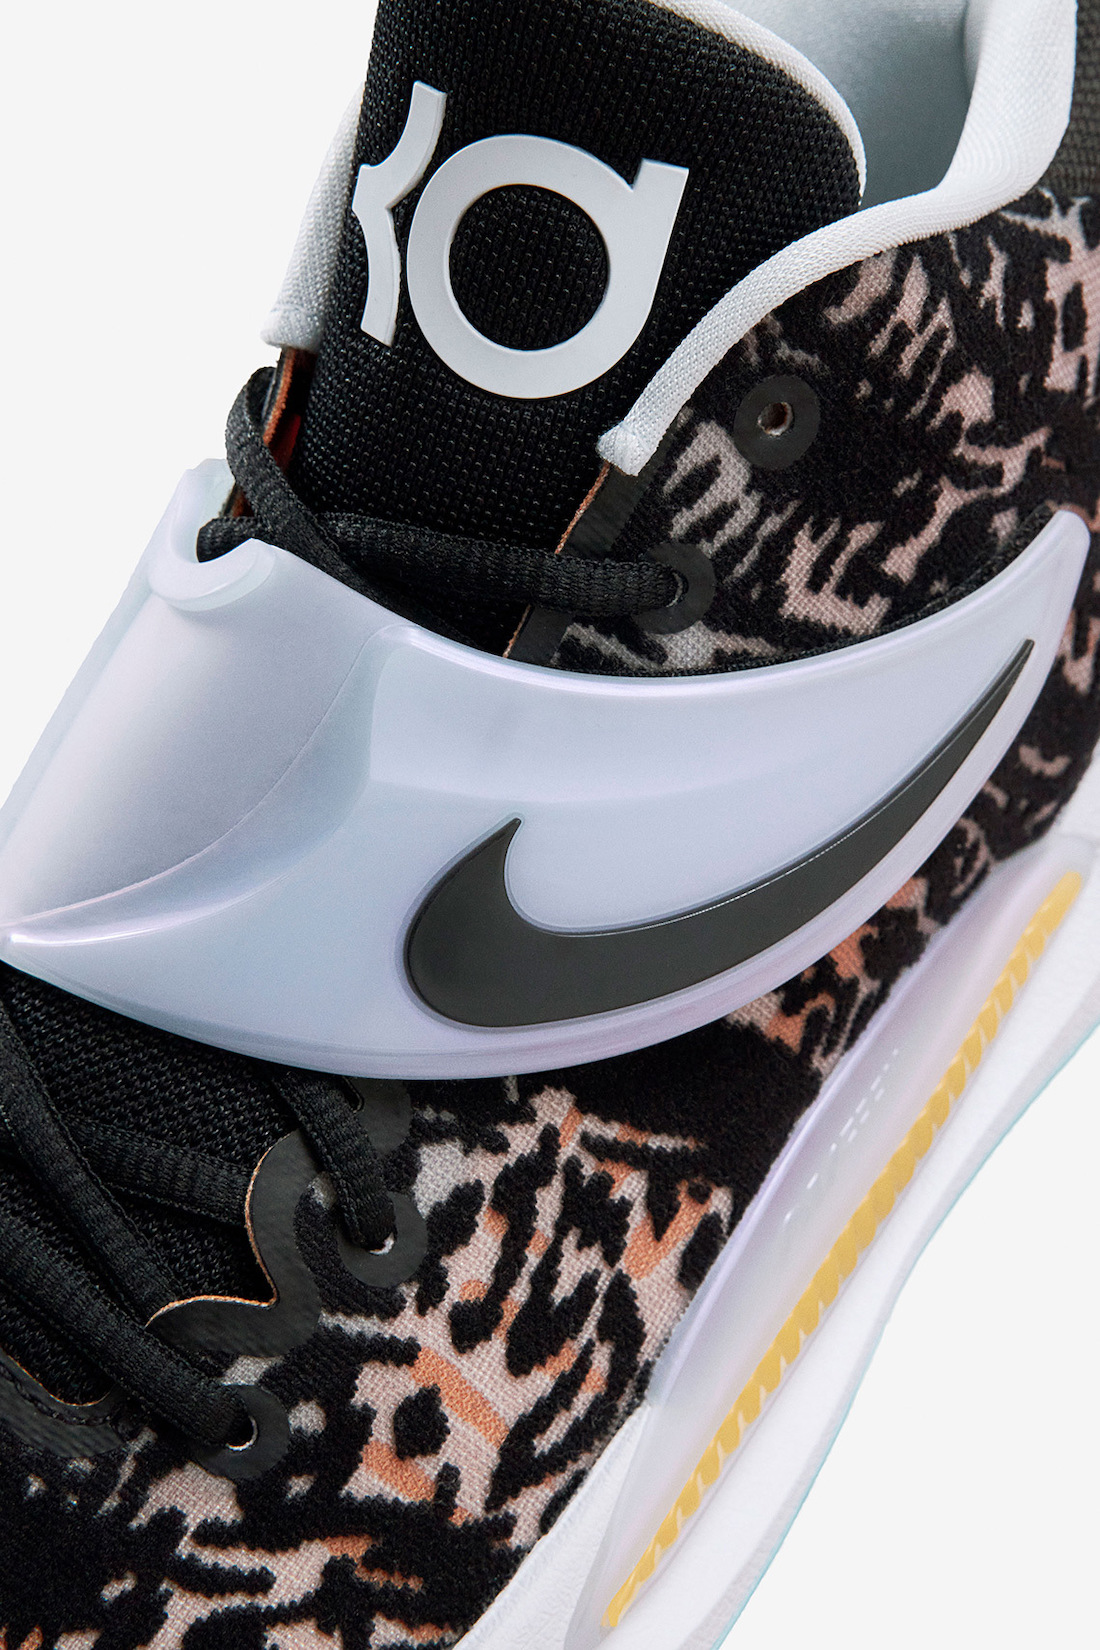 Nike-KD-14-Release-Date-Pricing-3